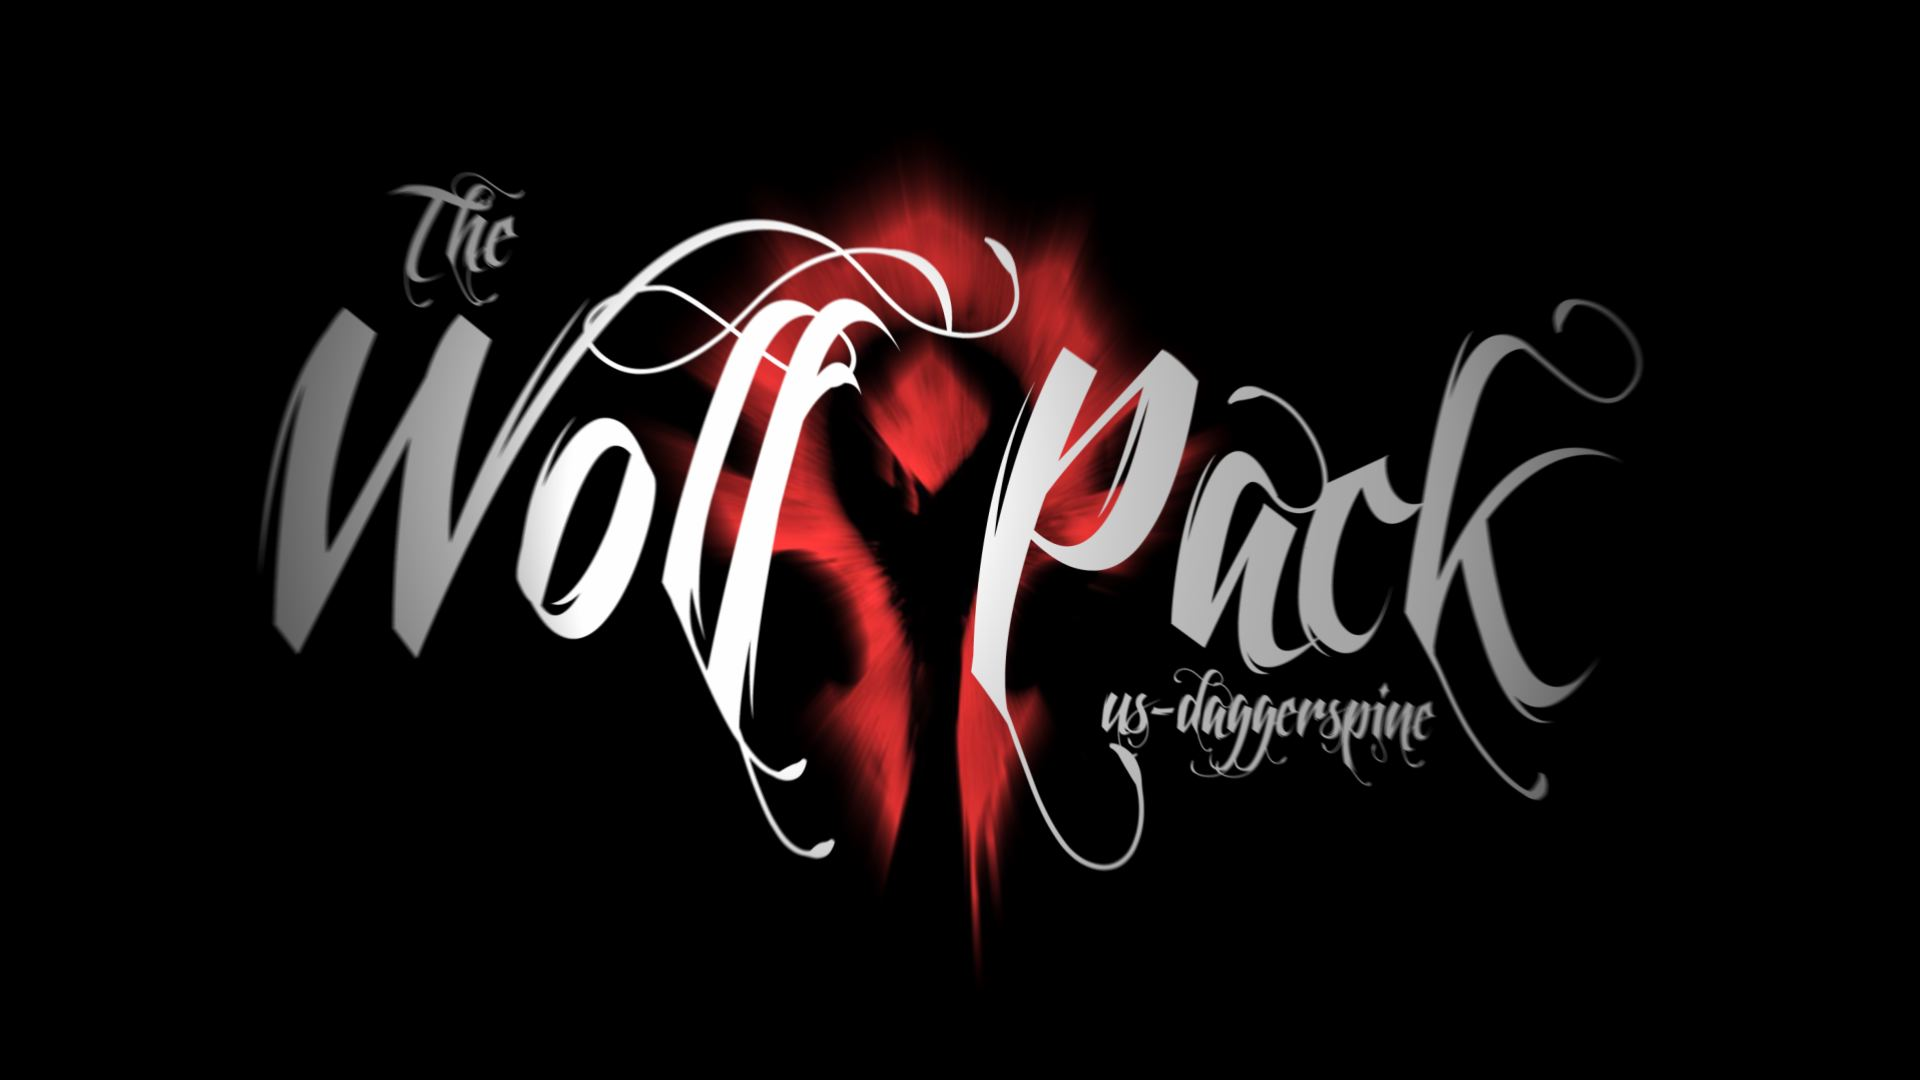 1999 wwe wolfpack sting wallpaper - photo #35